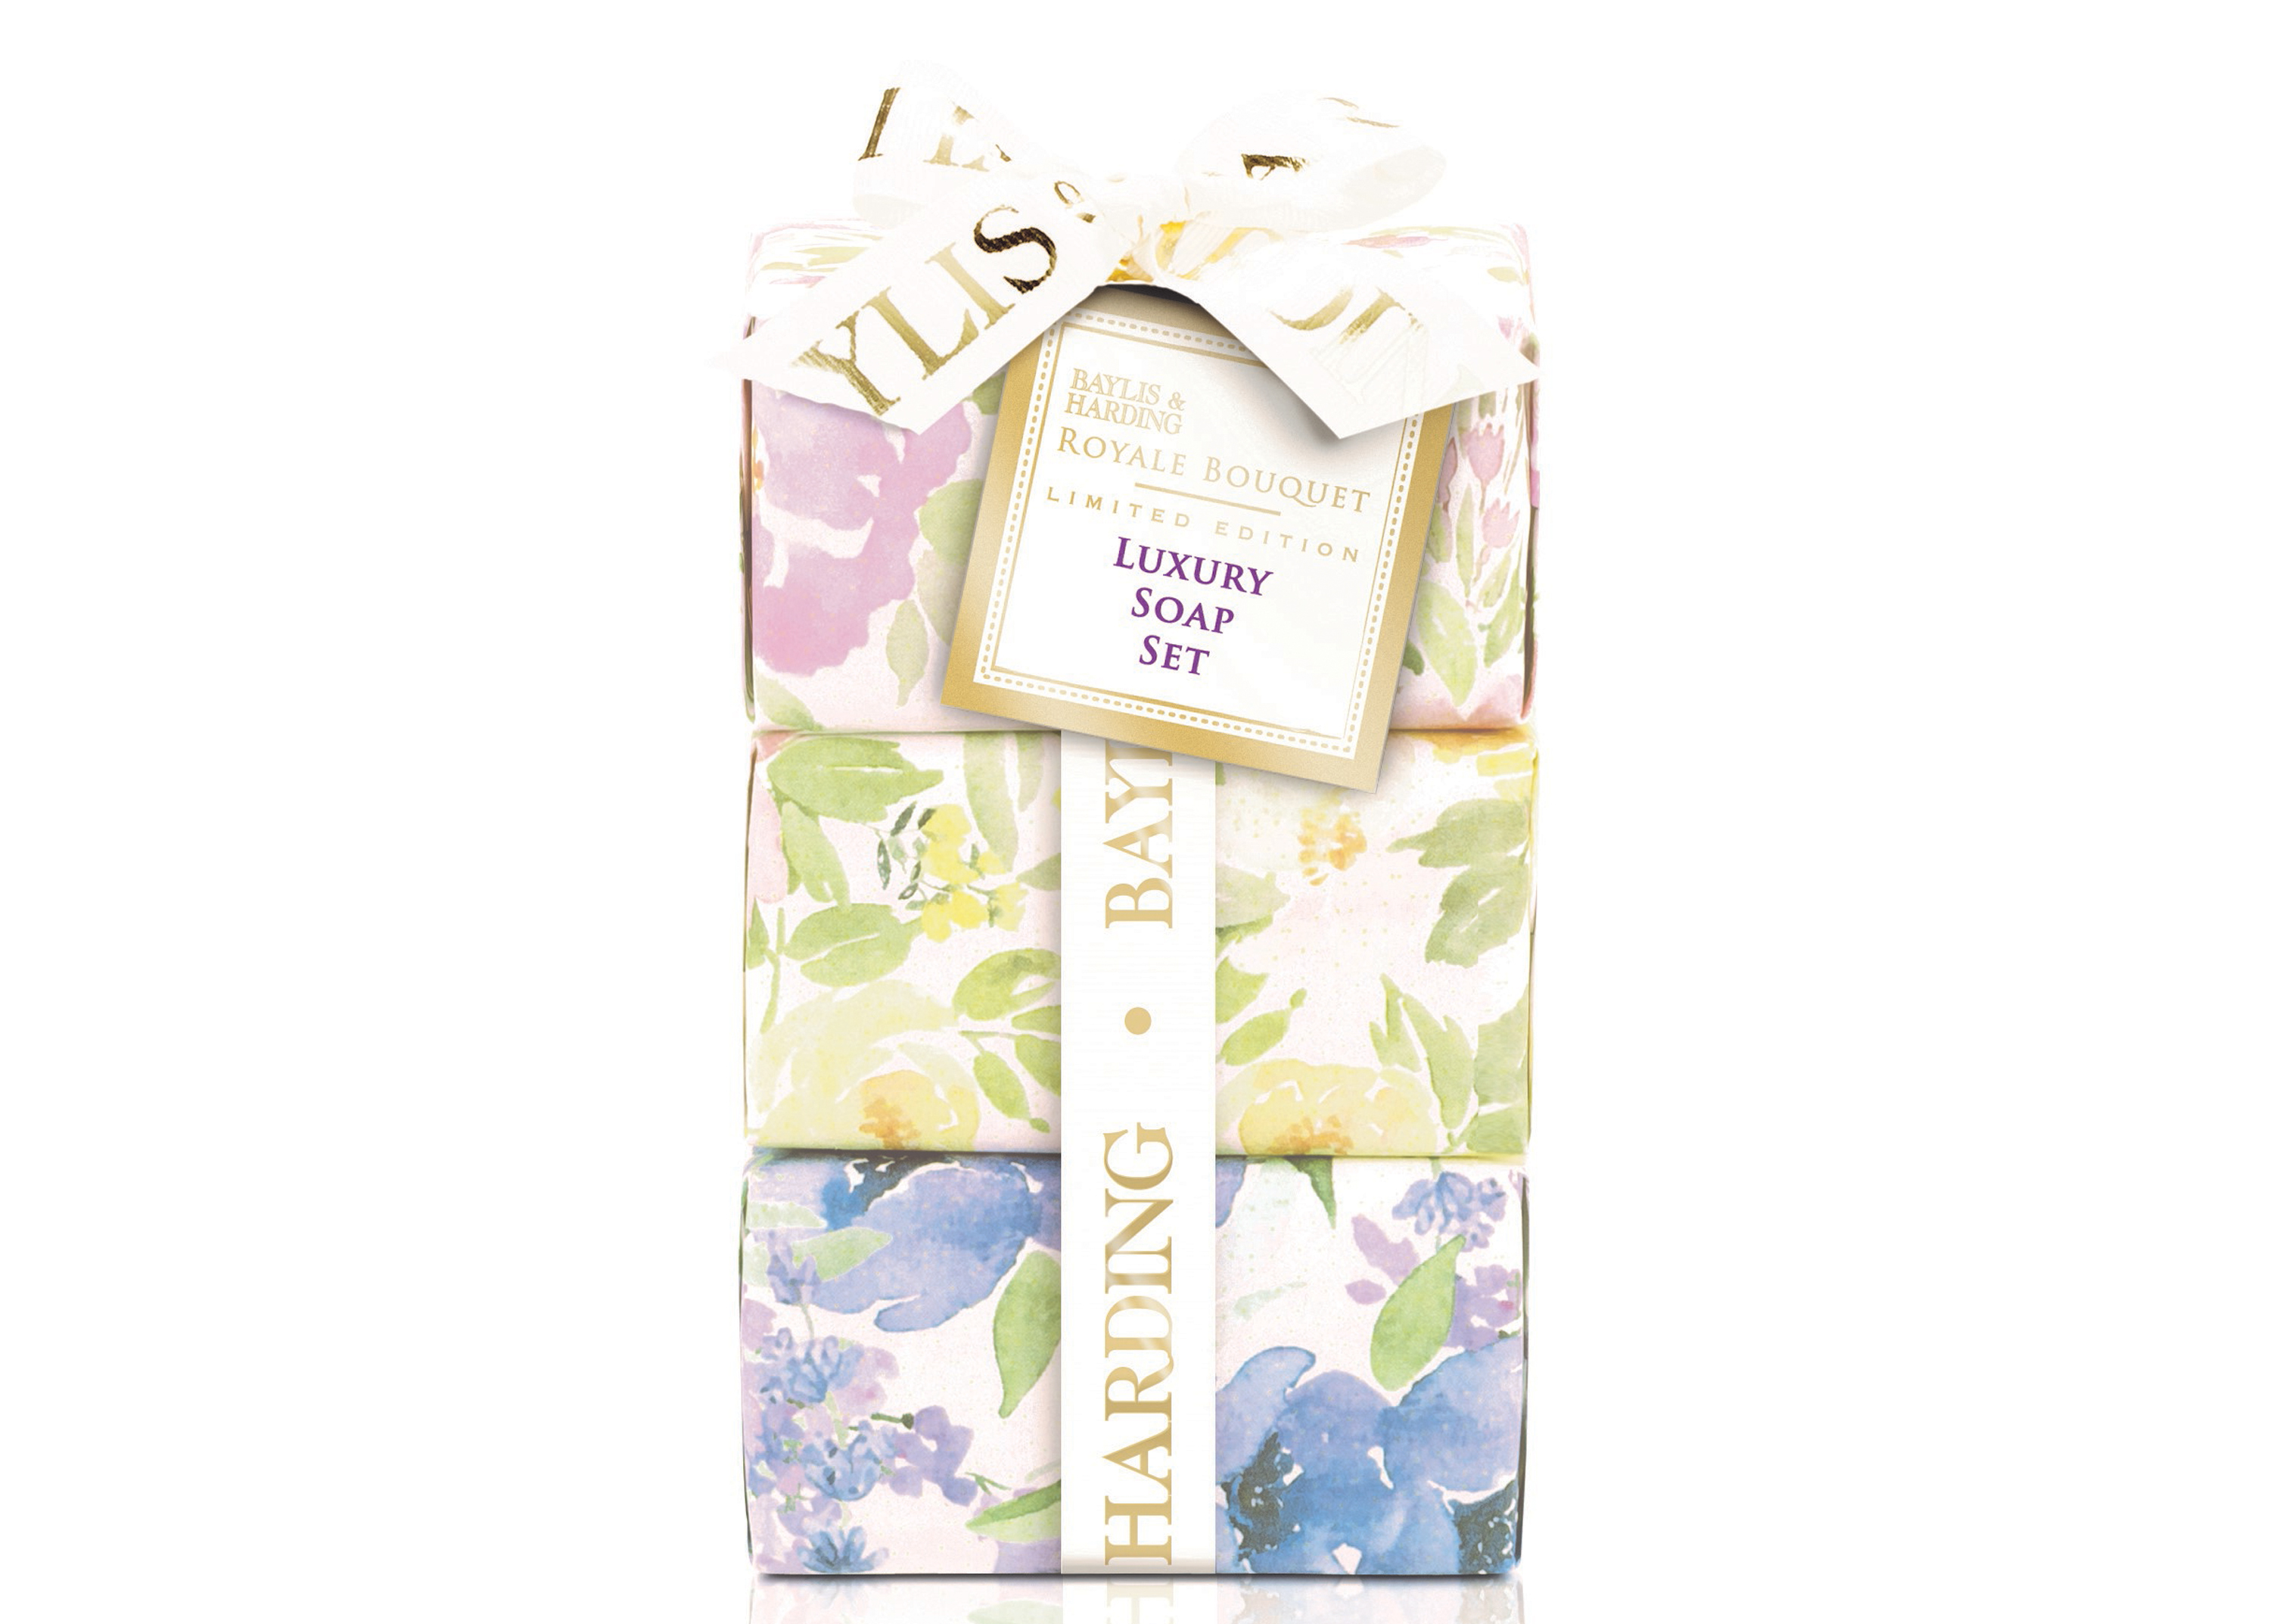 Baylis & Harding Royale Bouquet Limited Edition Luxury Soap Set